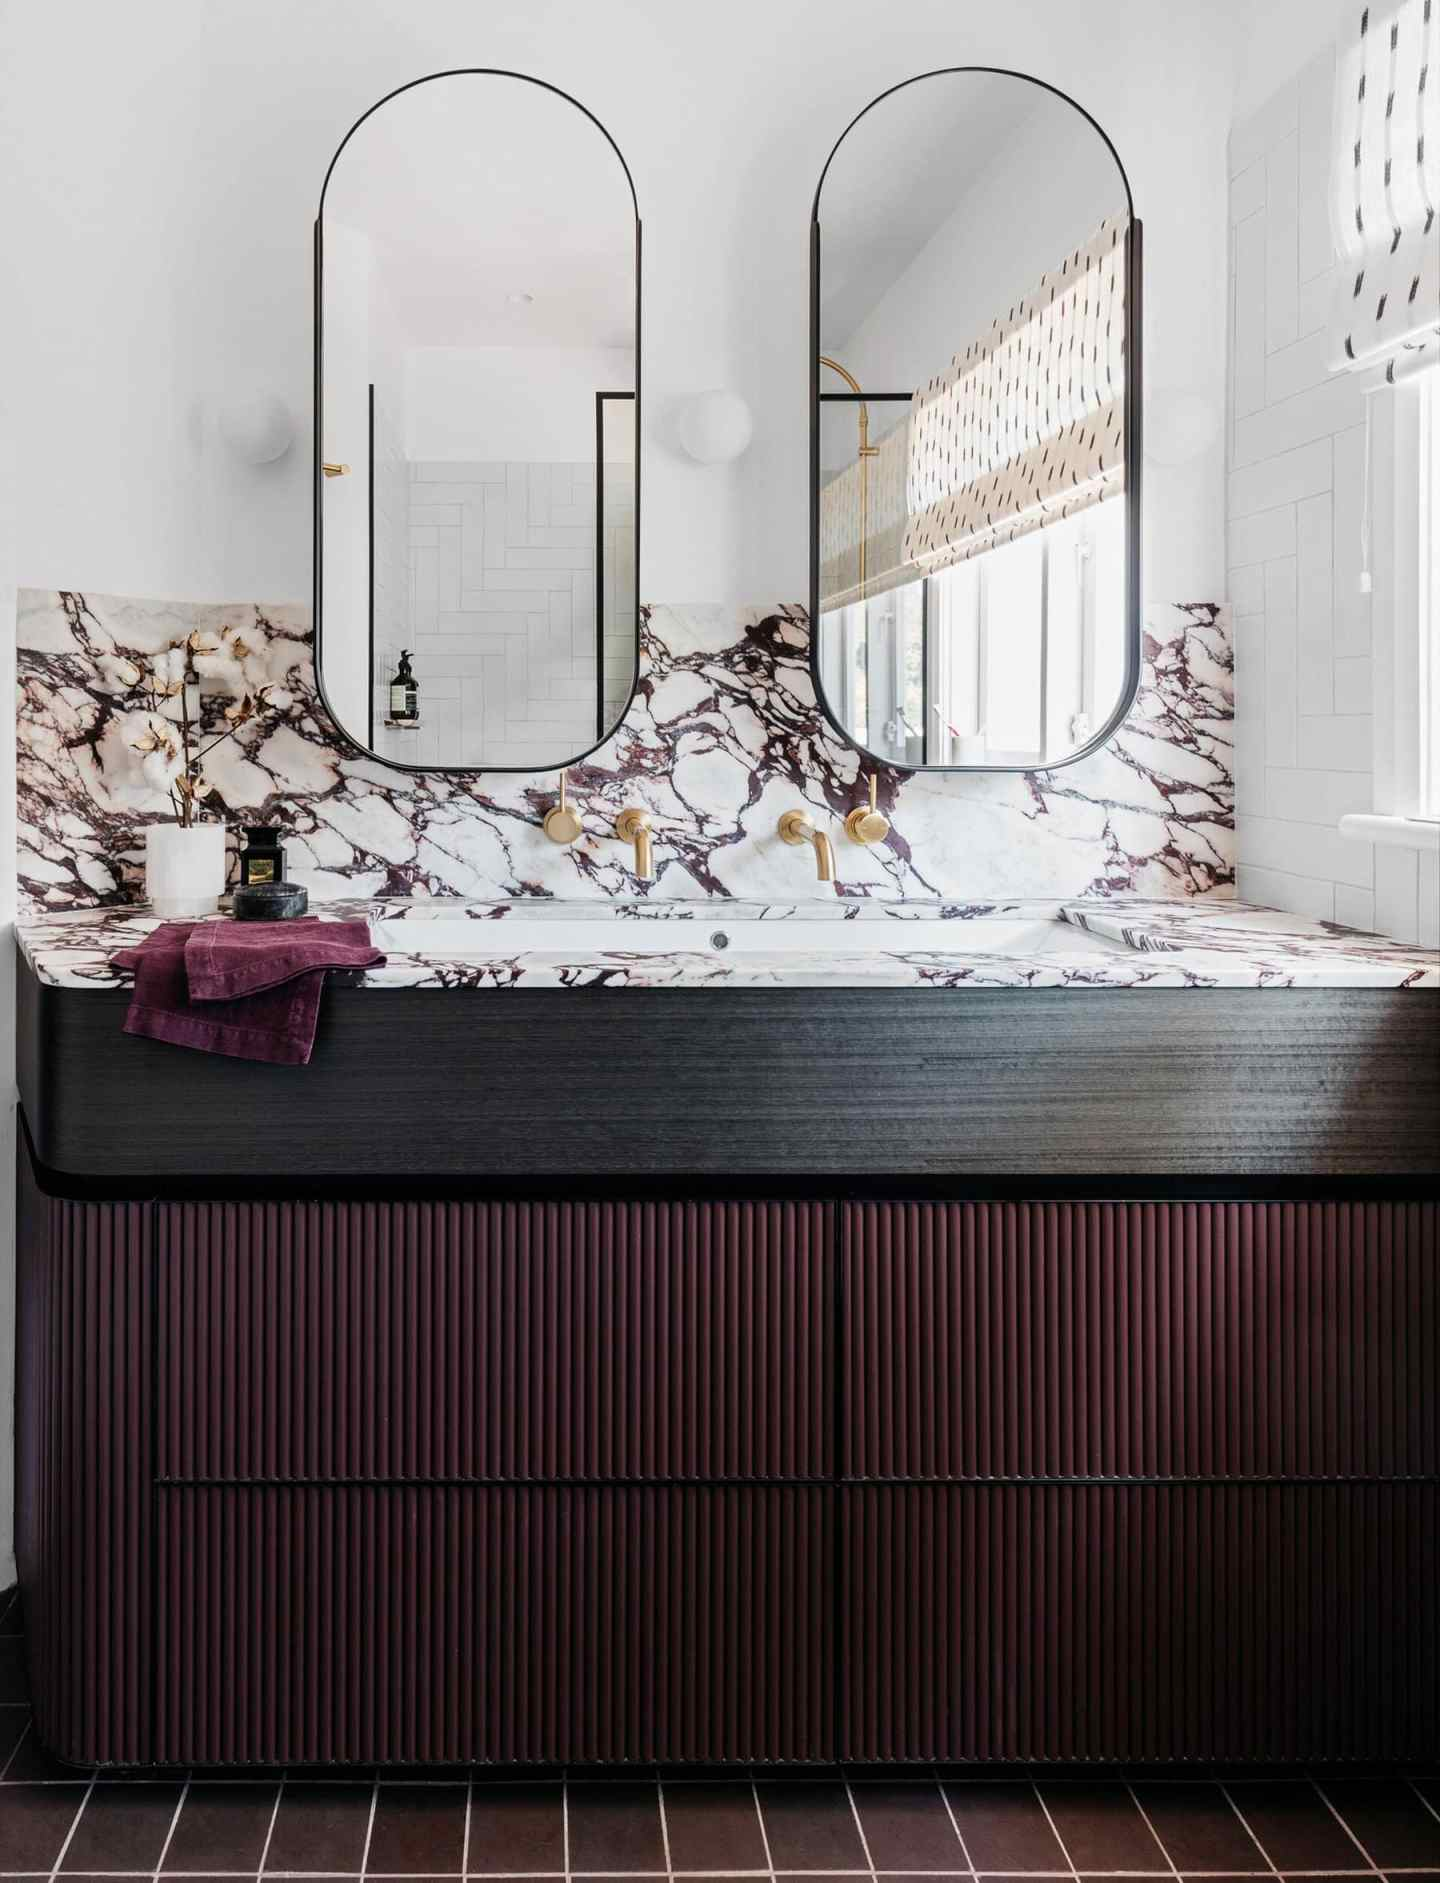 interior, interiors, interior design, interior design trends, trends, 2020, 2020 trends, rattan, faces, jewel tones, ribbed furniture, design, colours, colors, colour trends, bathroom